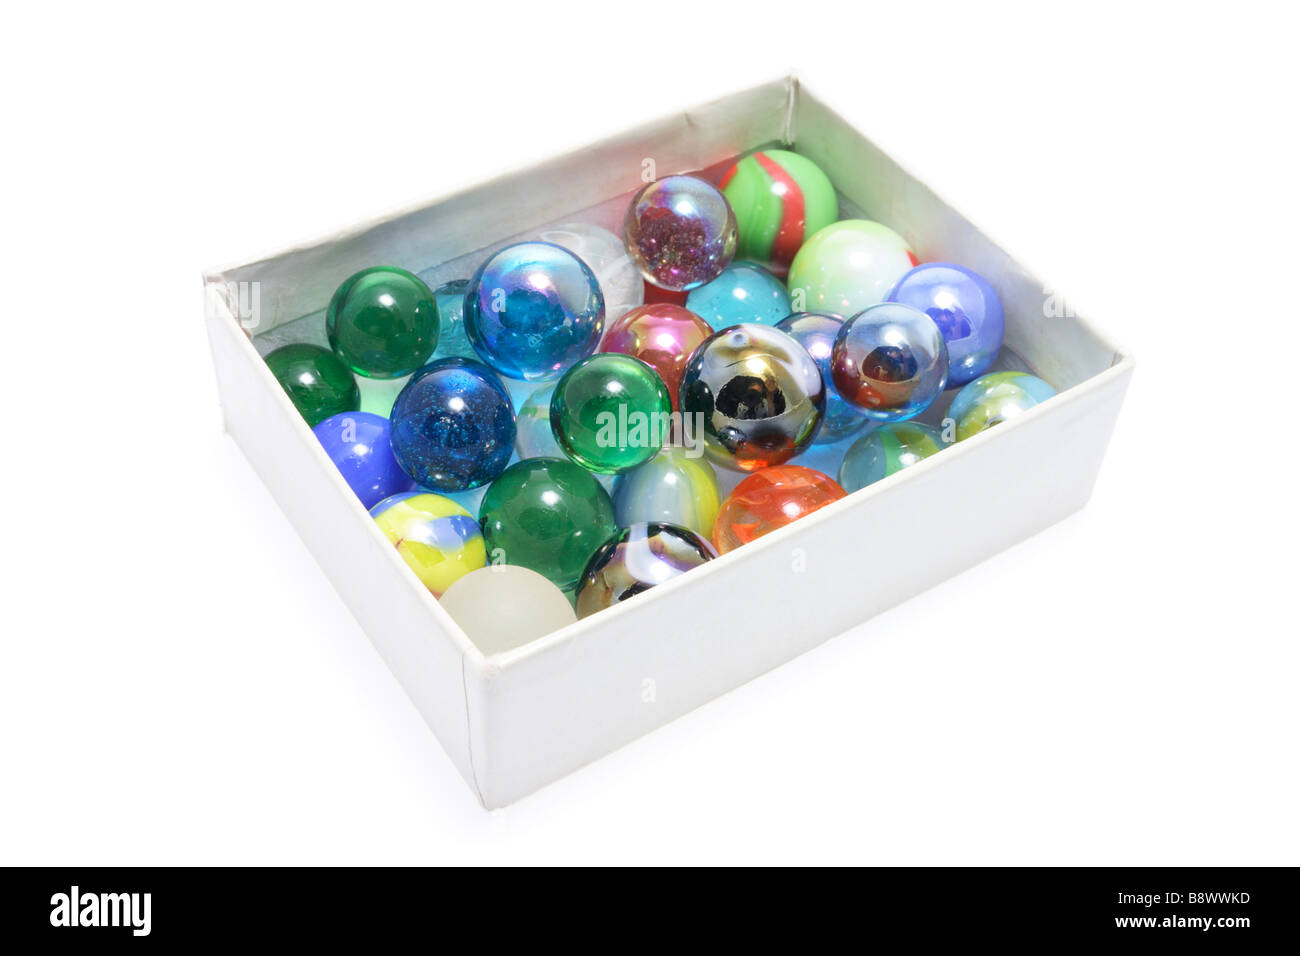 Box of Marbles - Stock Image